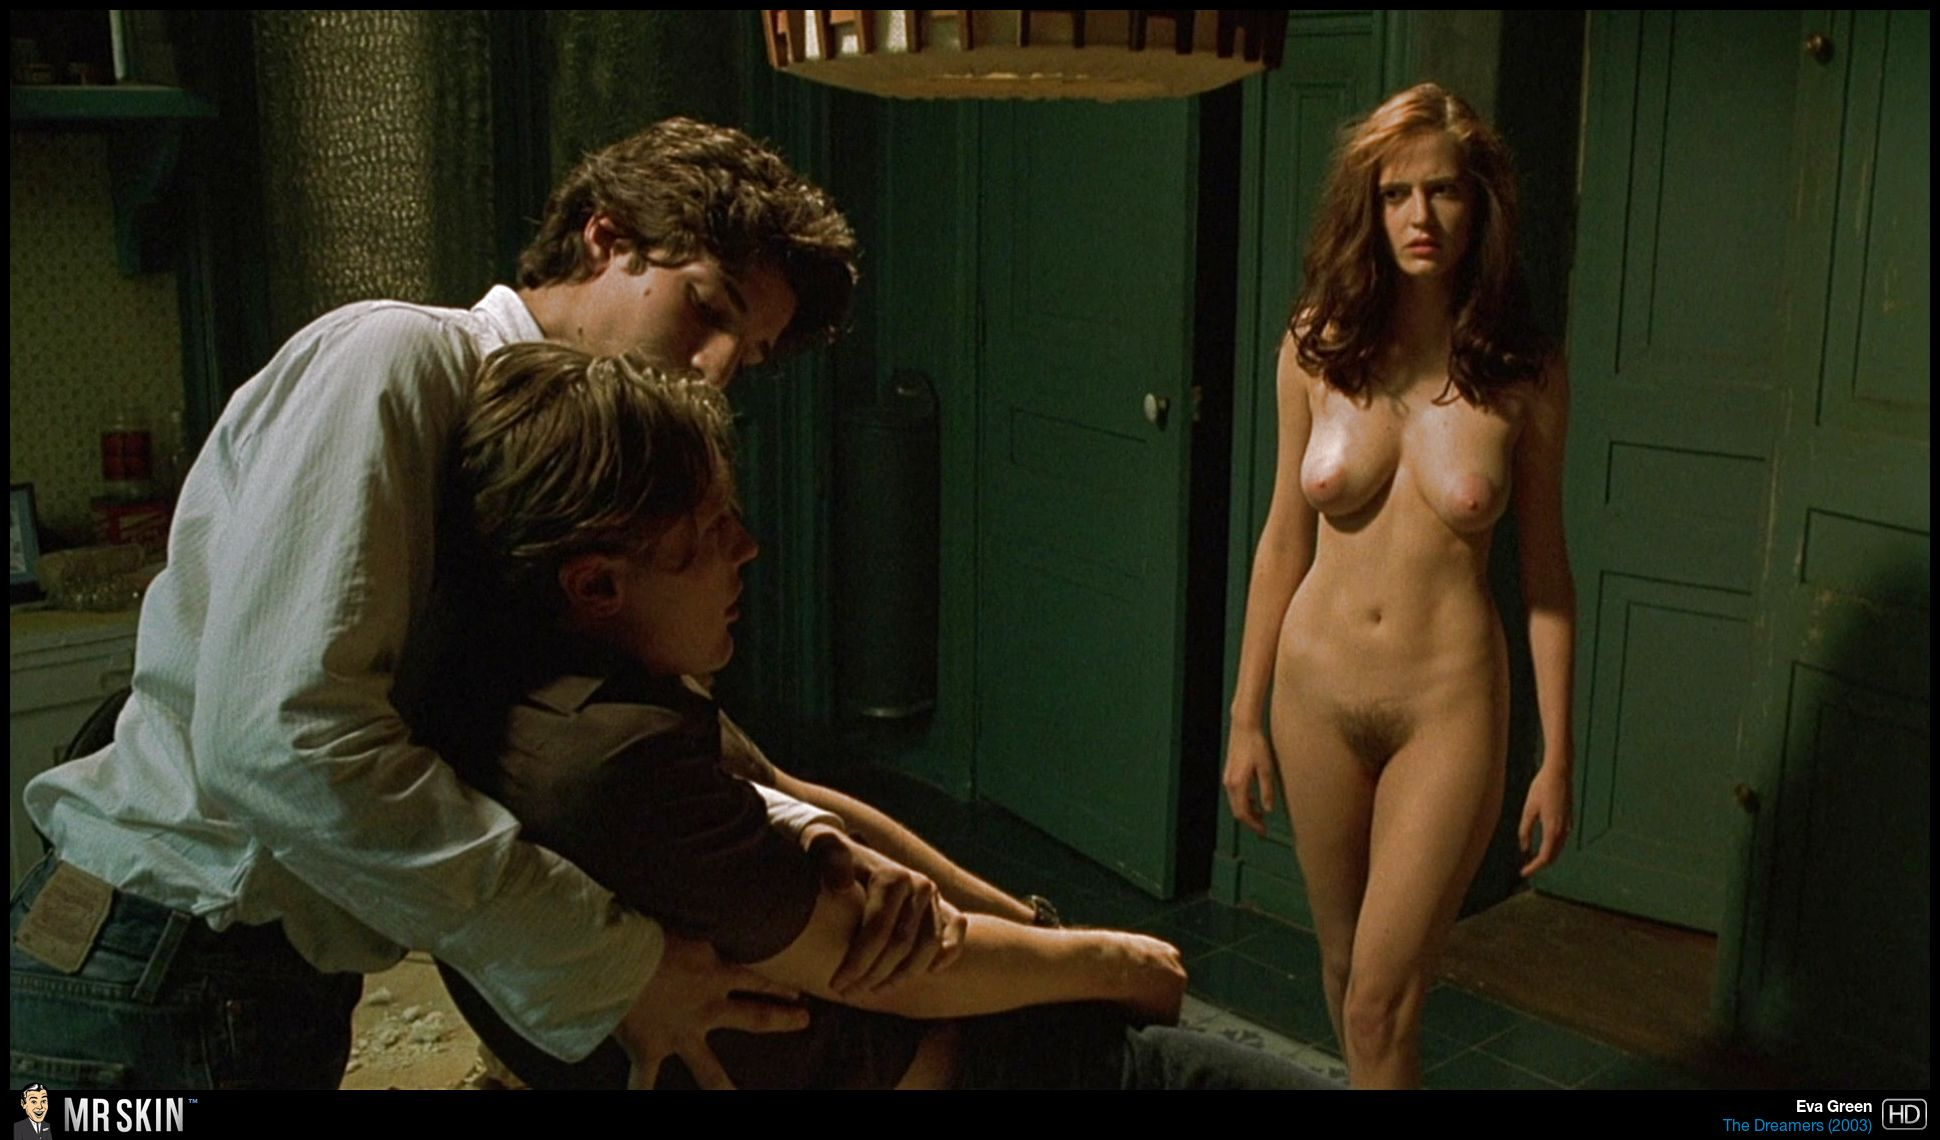 Eva Green in The Dreamers